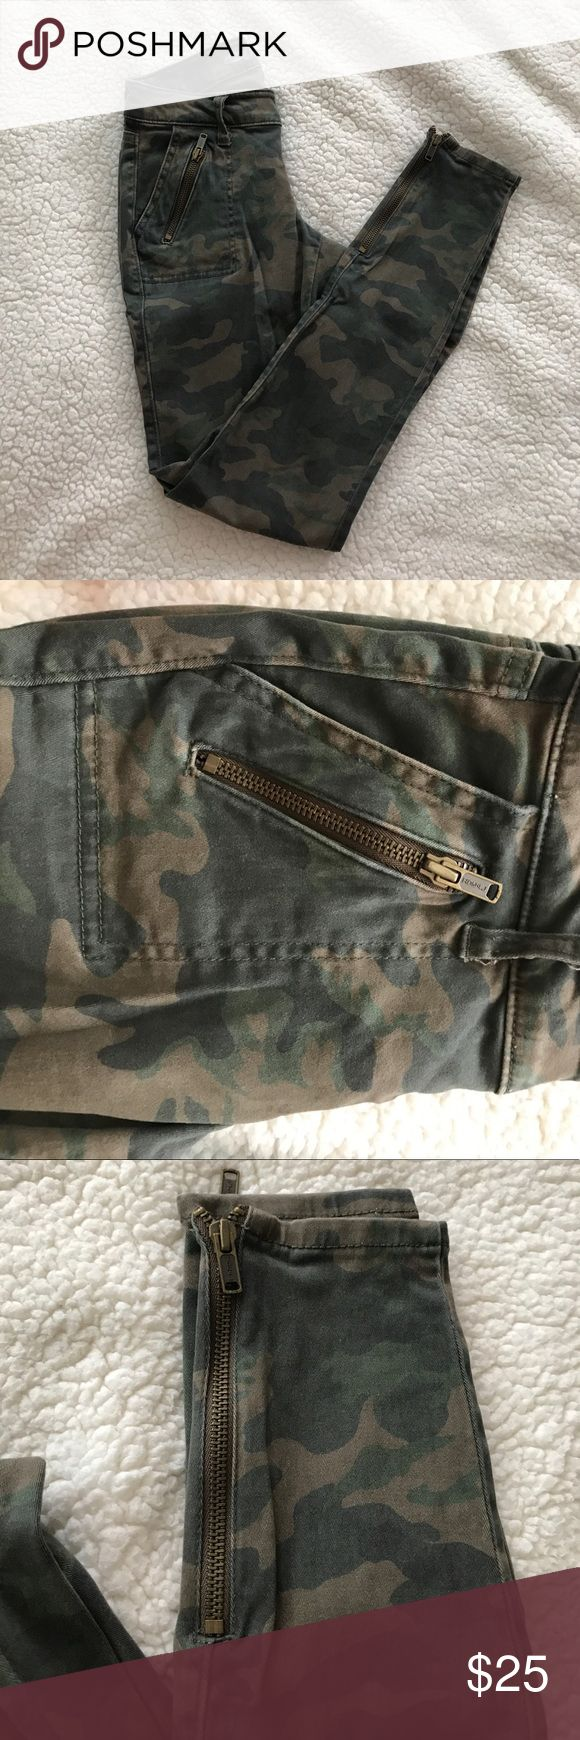 Camo Skinny Jeans Rockstar fit Old Navy skinny jeans. Camo print with zipper detail on front pockets and ankles. Super cute and comfy Old Navy Jeans Skinny